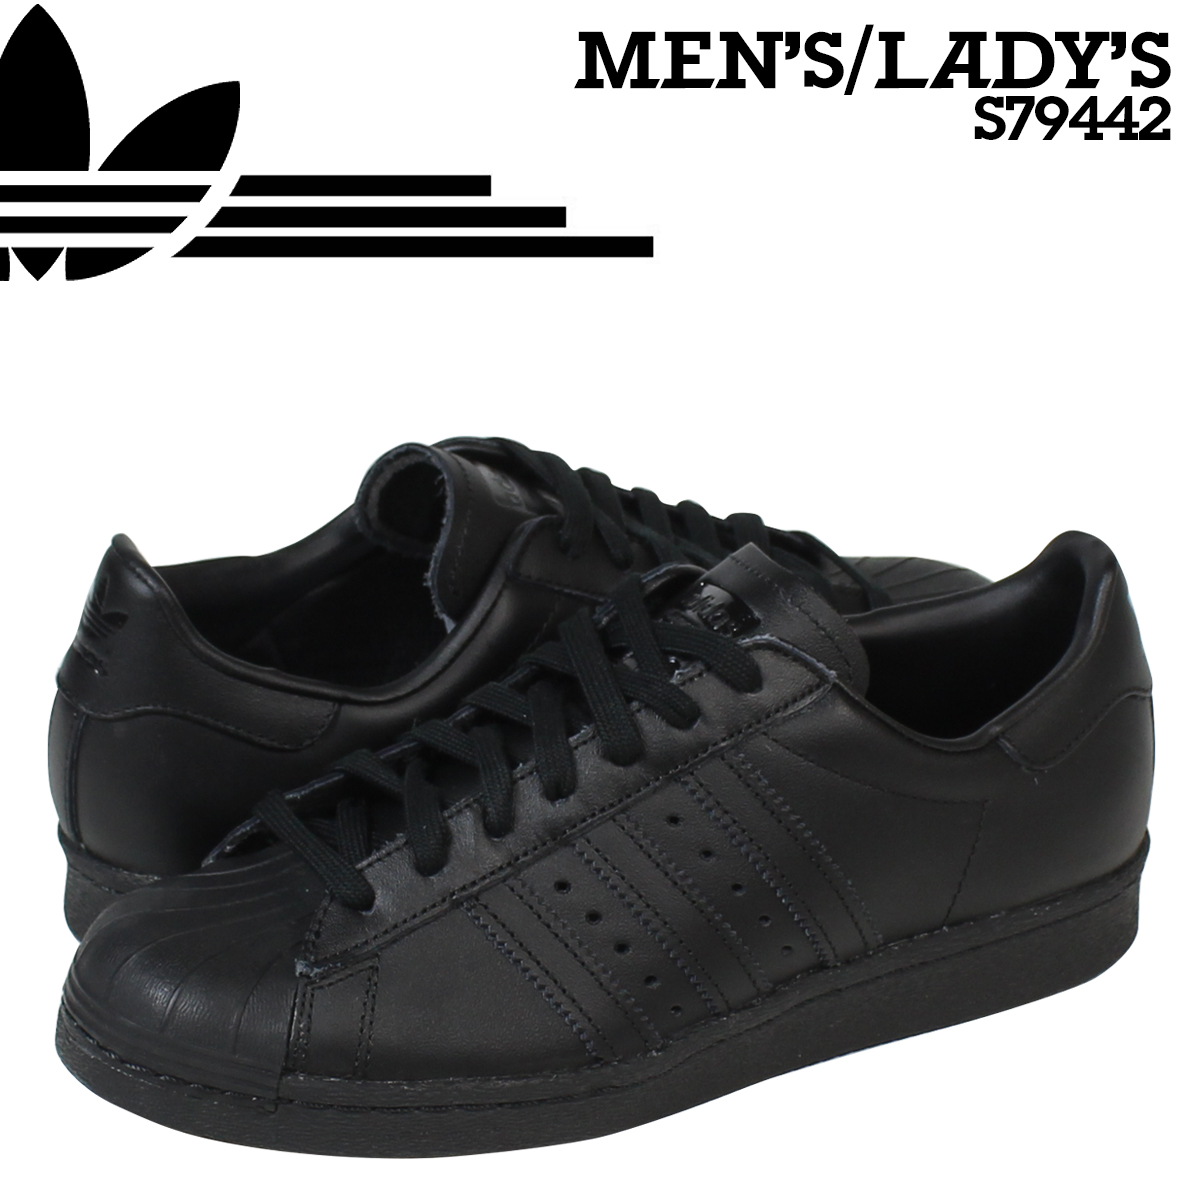 49c64da80 ALLSPORTS  Adidas originals adidas Originals superstar triple TNA sneakers  SUPERSTAR 80 s TRIPLE TONA S79442 men s women s shoes black  8 5 Add in  stock  ...